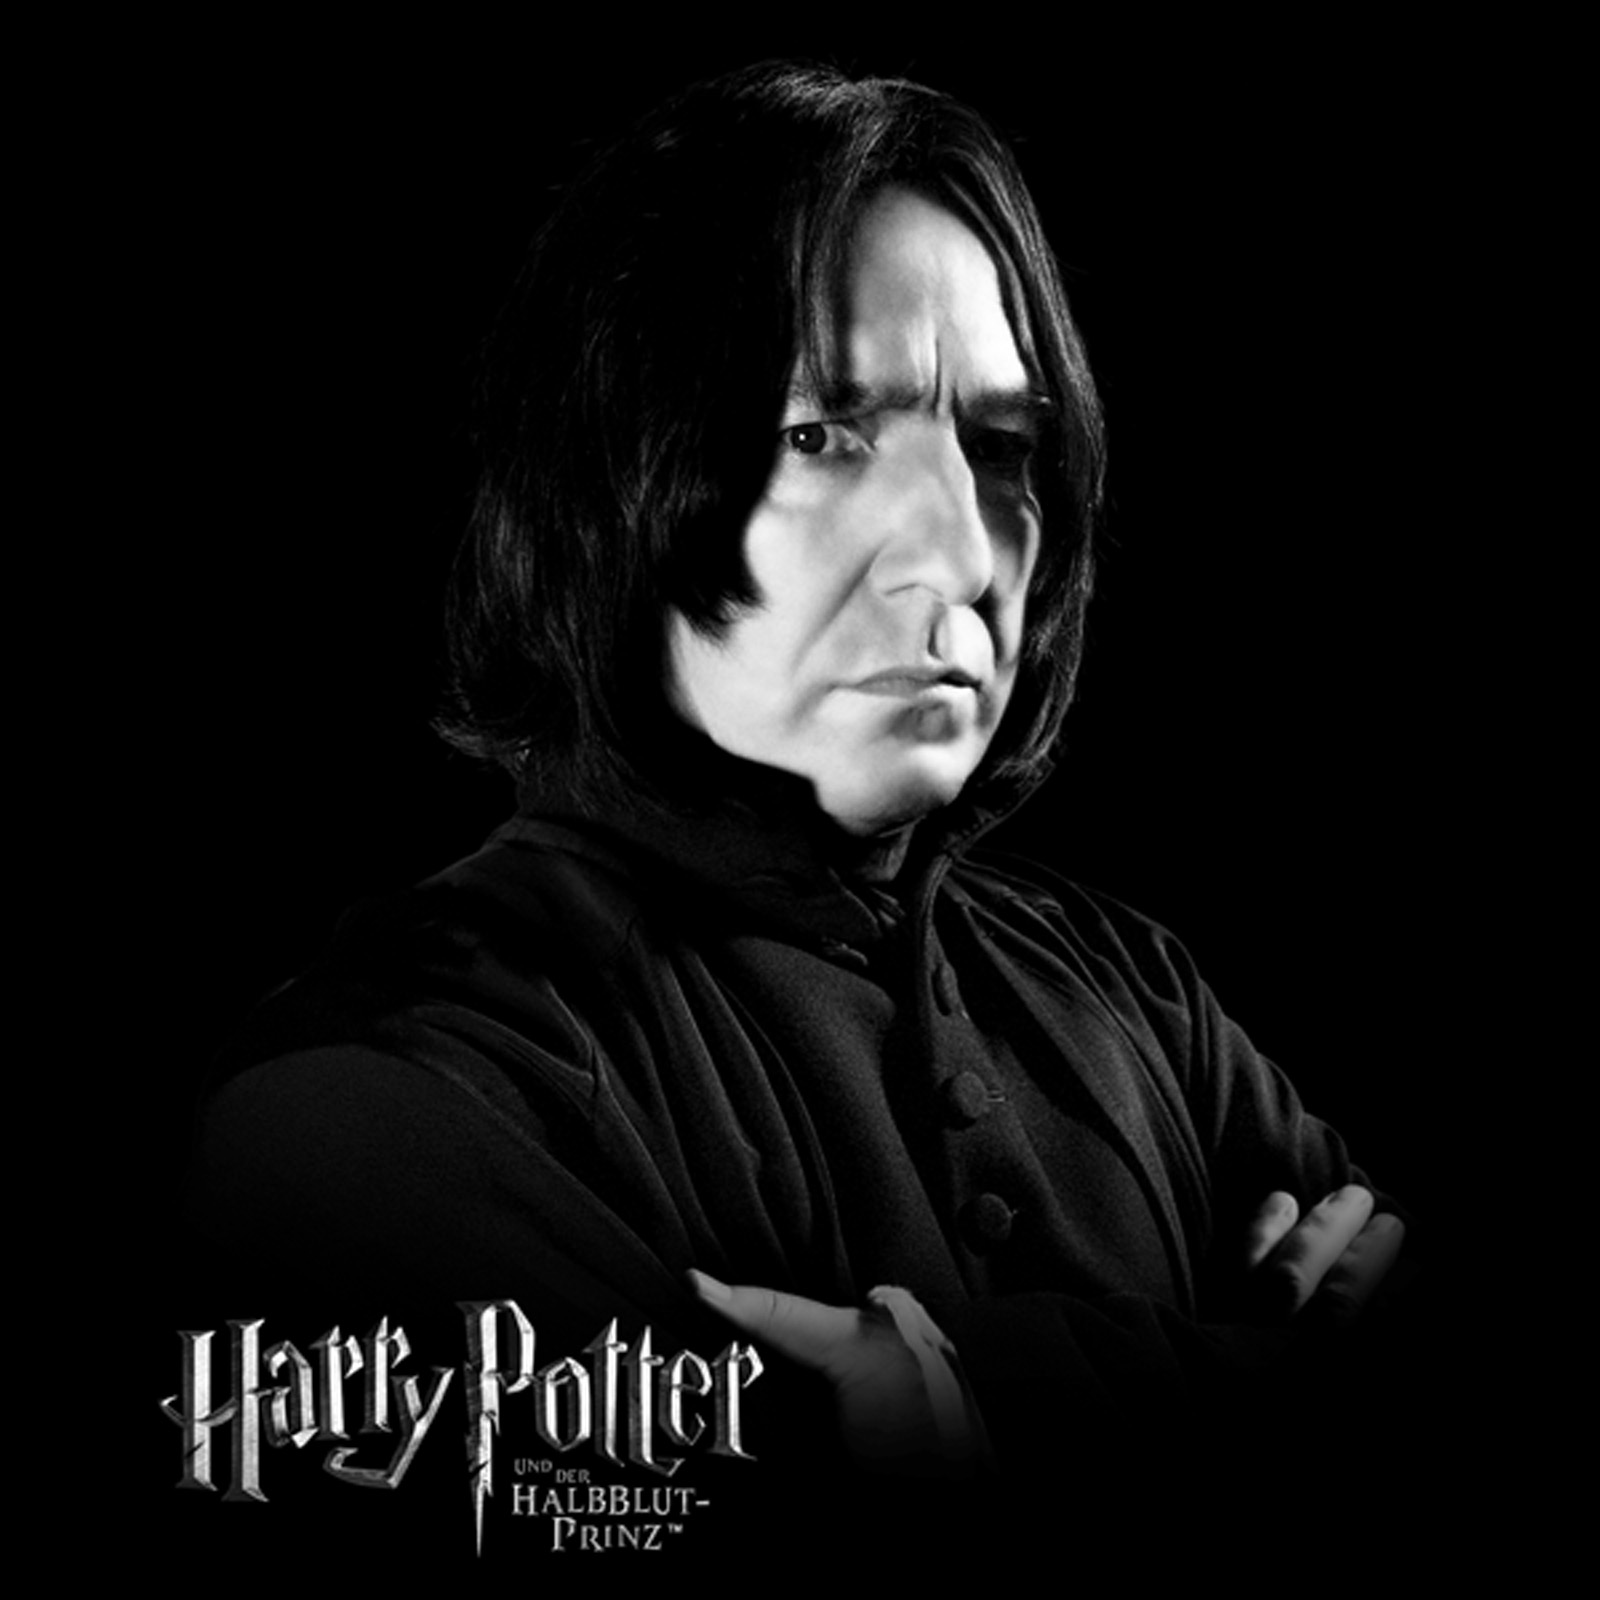 severus snape kinder t shirt b w aus harry potter. Black Bedroom Furniture Sets. Home Design Ideas